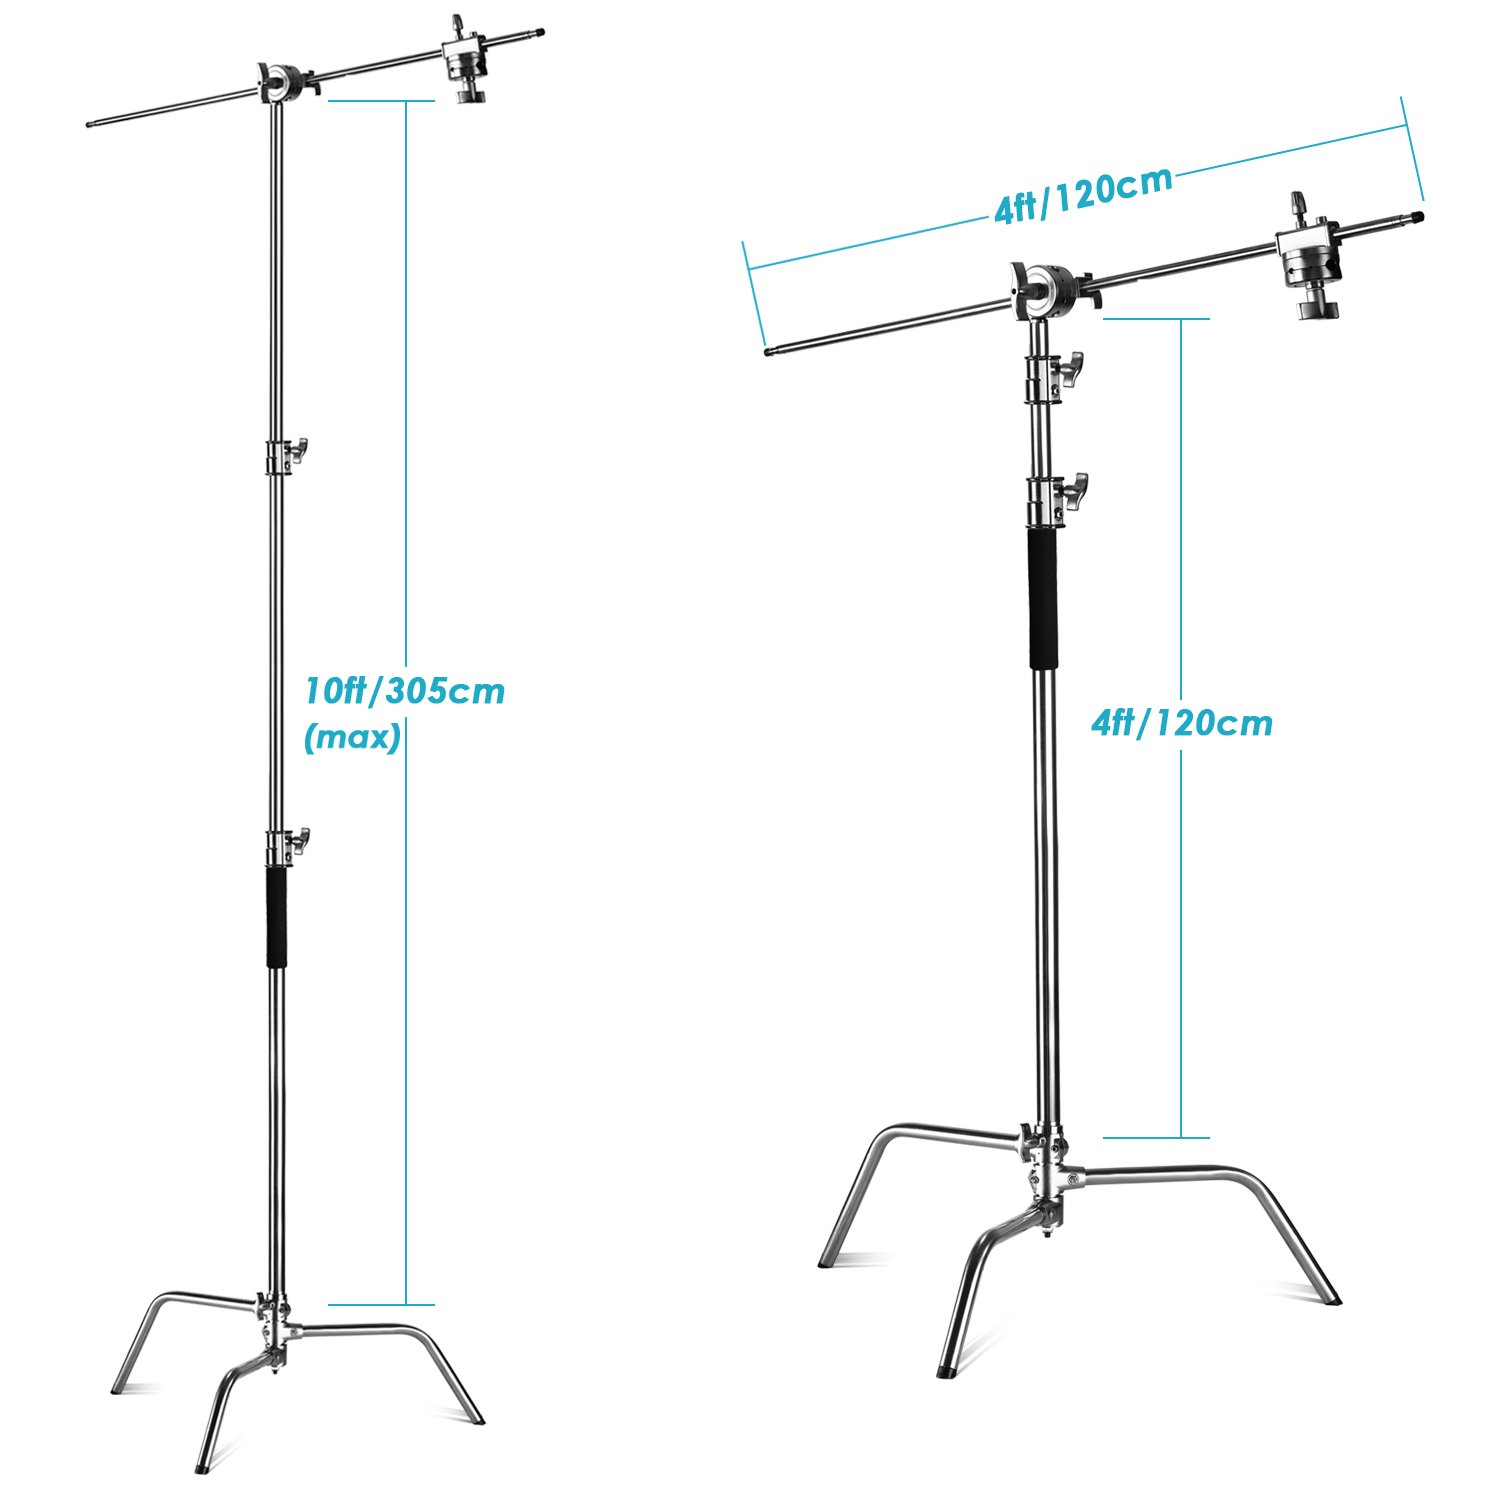 Neewer 2 Pieces Heavy Duty Max Height 10 feet/3 meters Adjustable Light Stand with 4 feet/1.2 meters Holding Arm and Grip Head Kit for Studio Video Reflector,Monolight and Other Photographic Equipment by Neewer (Image #2)